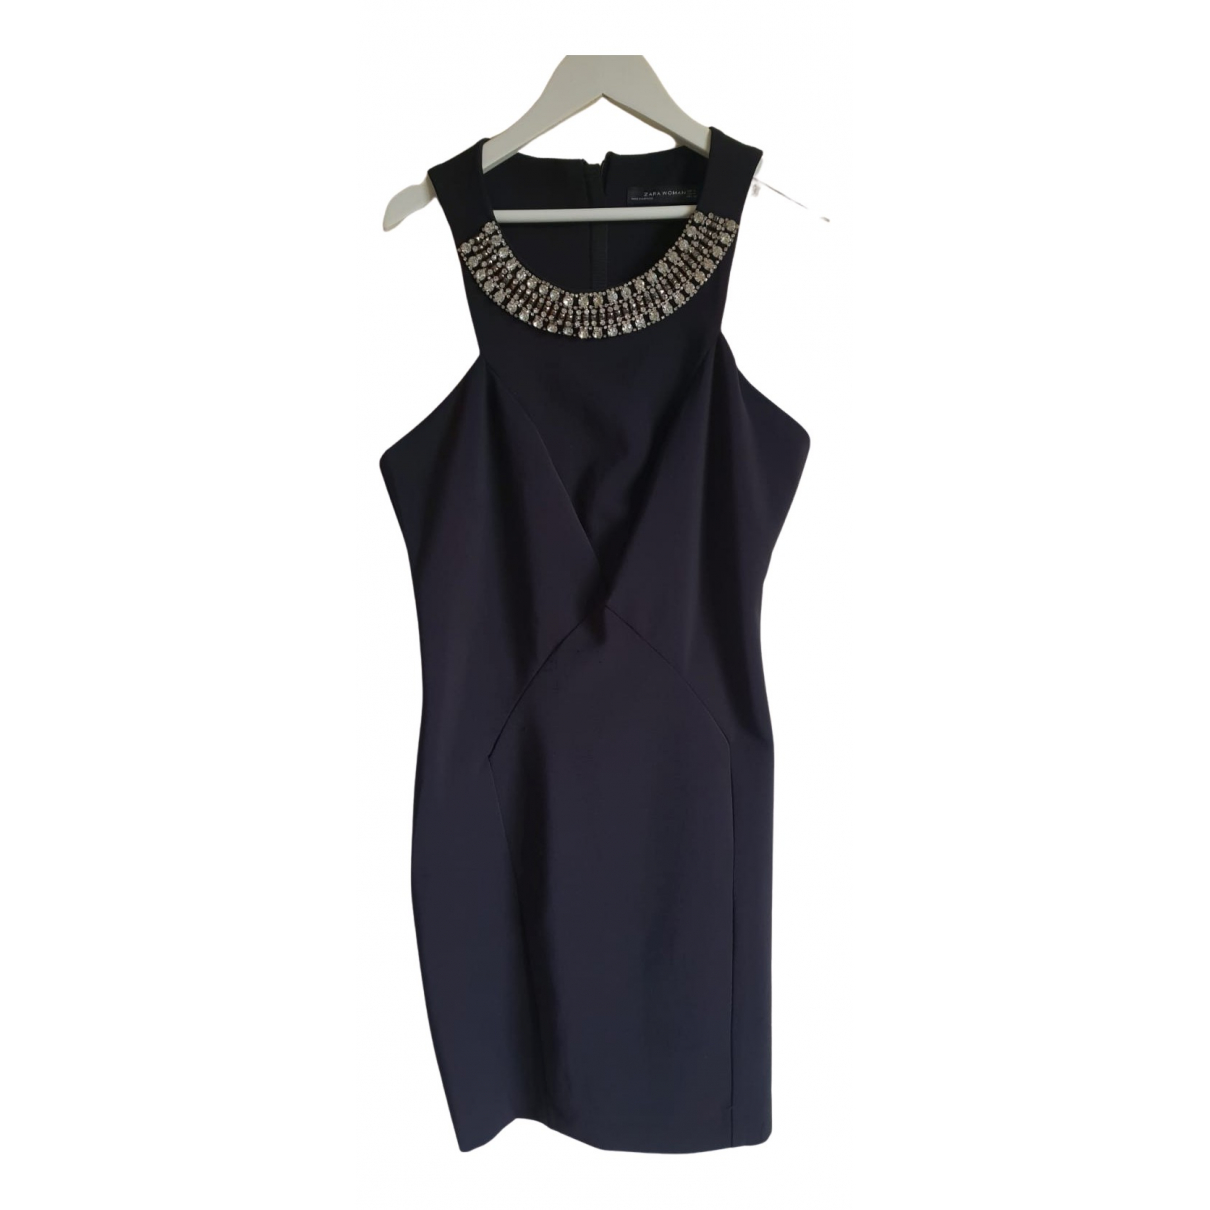 Zara N Black dress for Women 38 FR